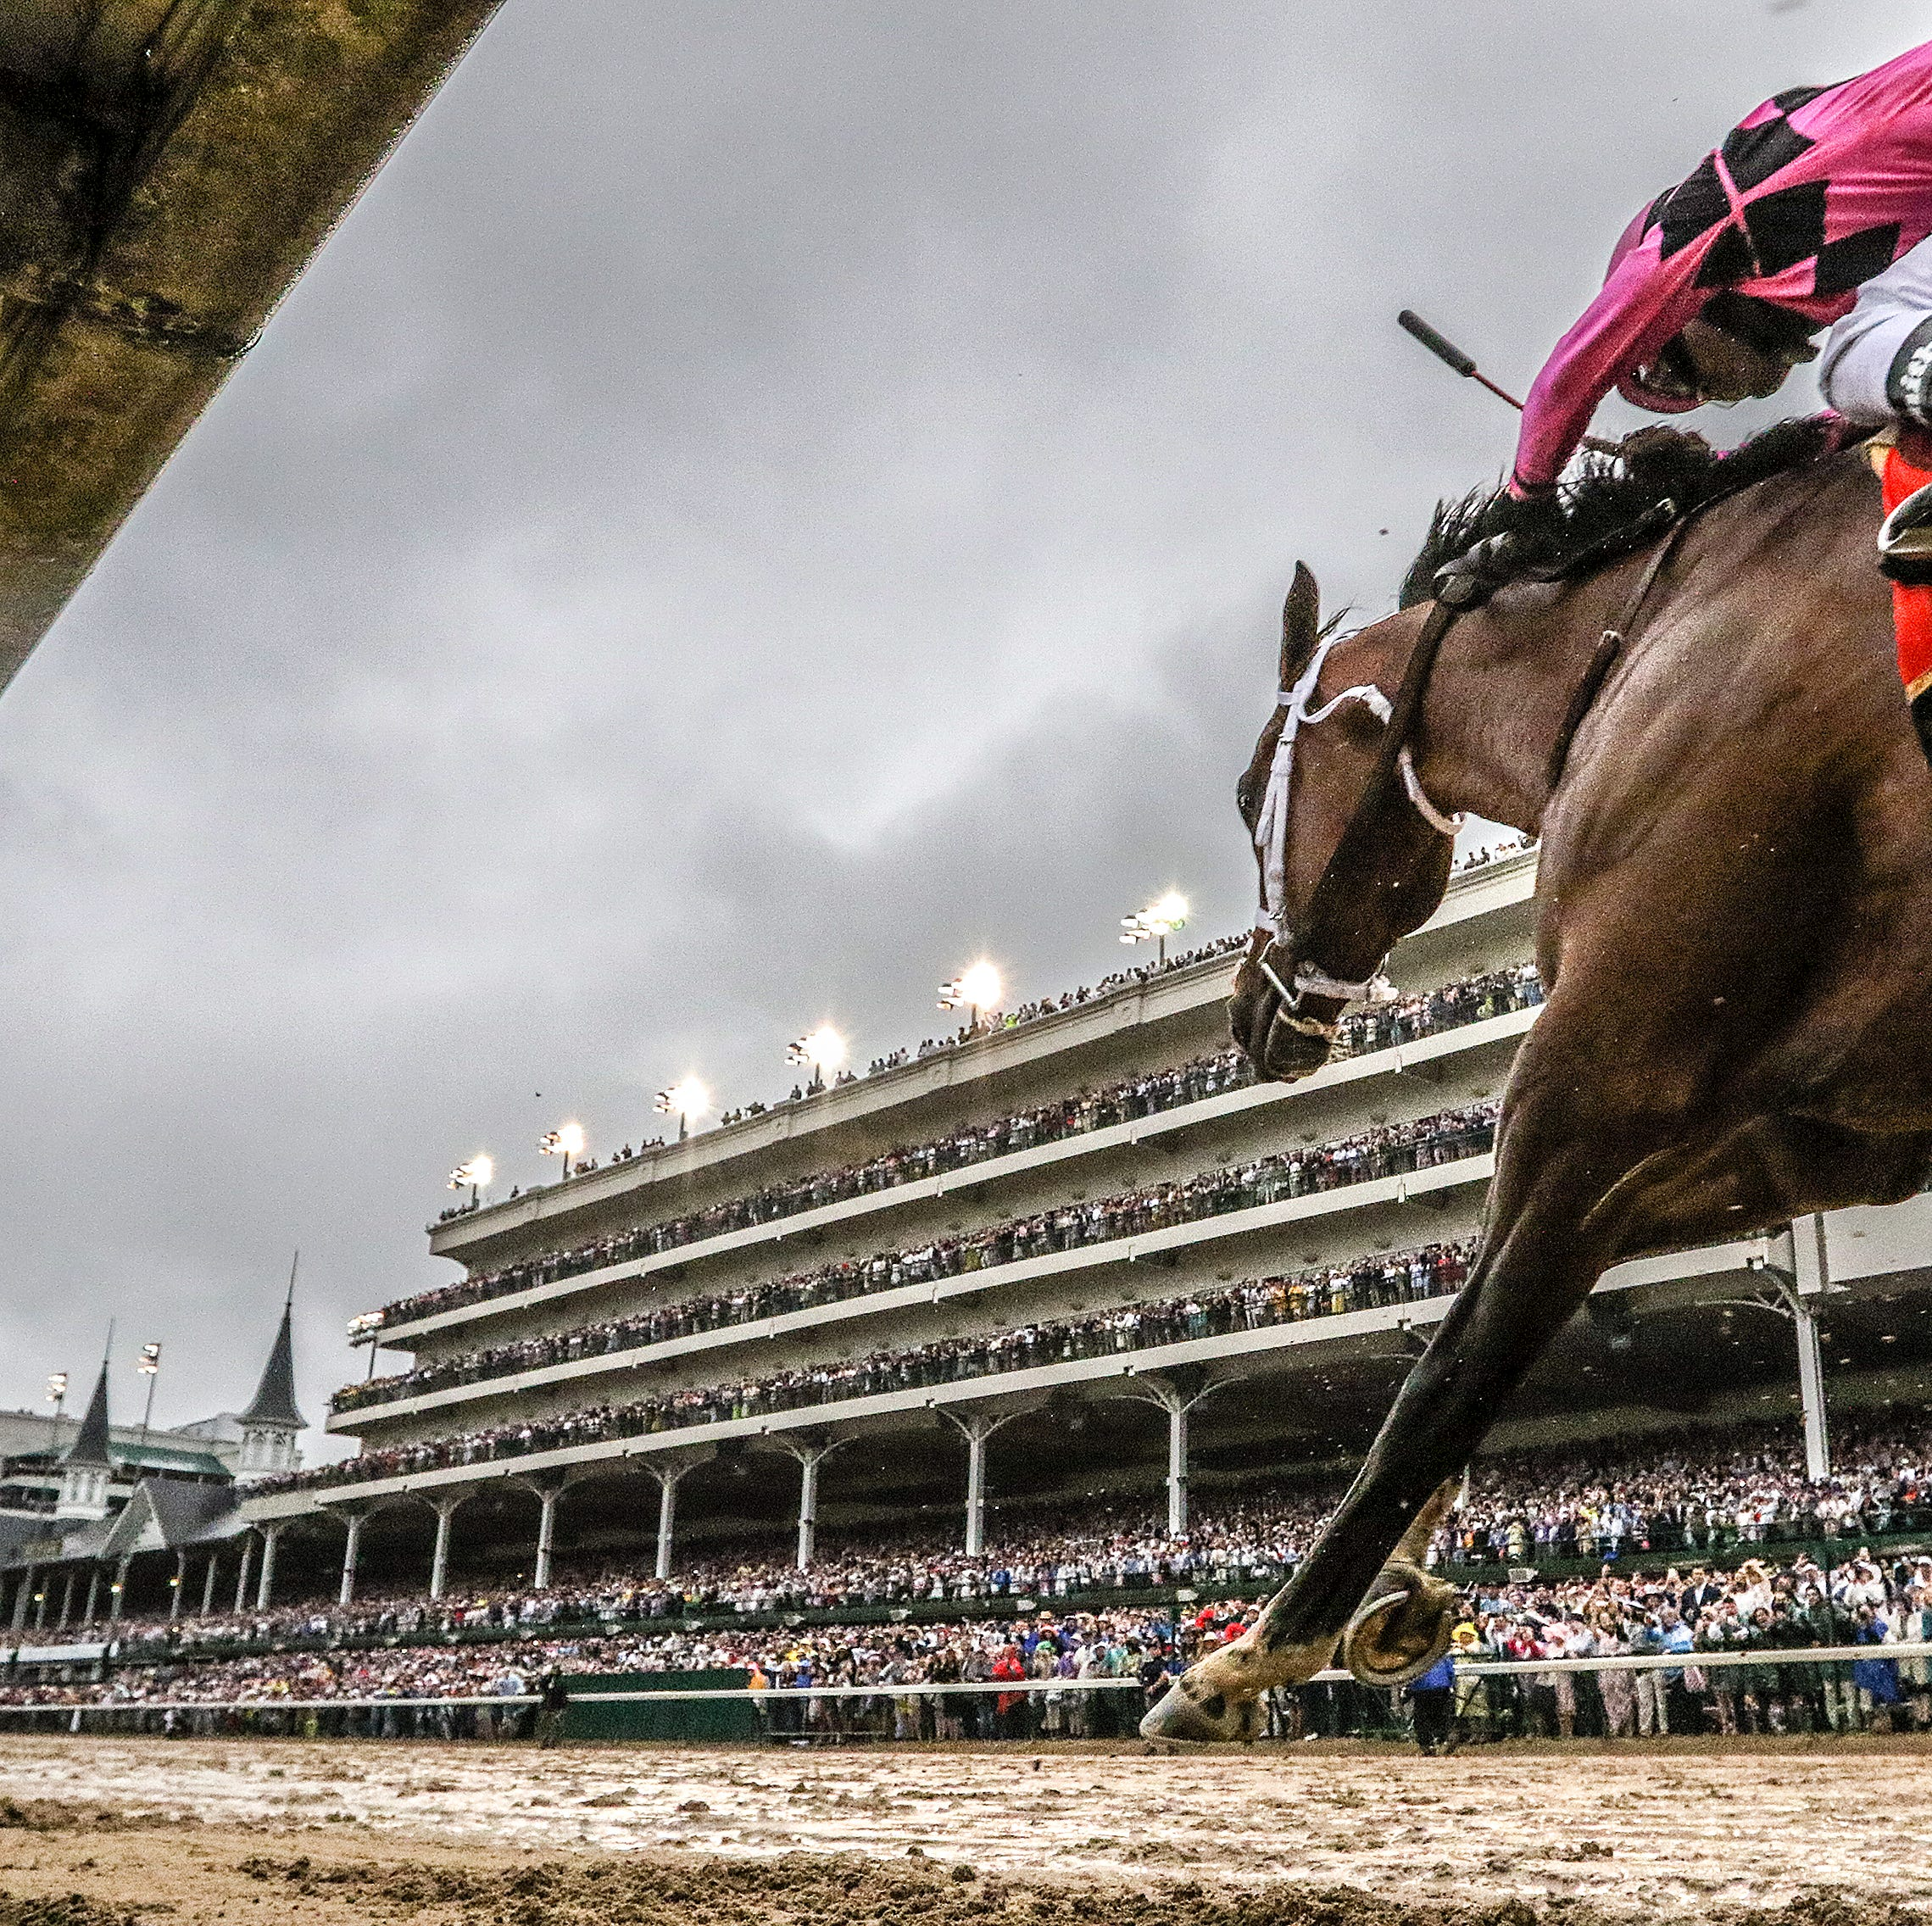 Kentucky Derby disqualification call: There's disconnect between horse racing and fans